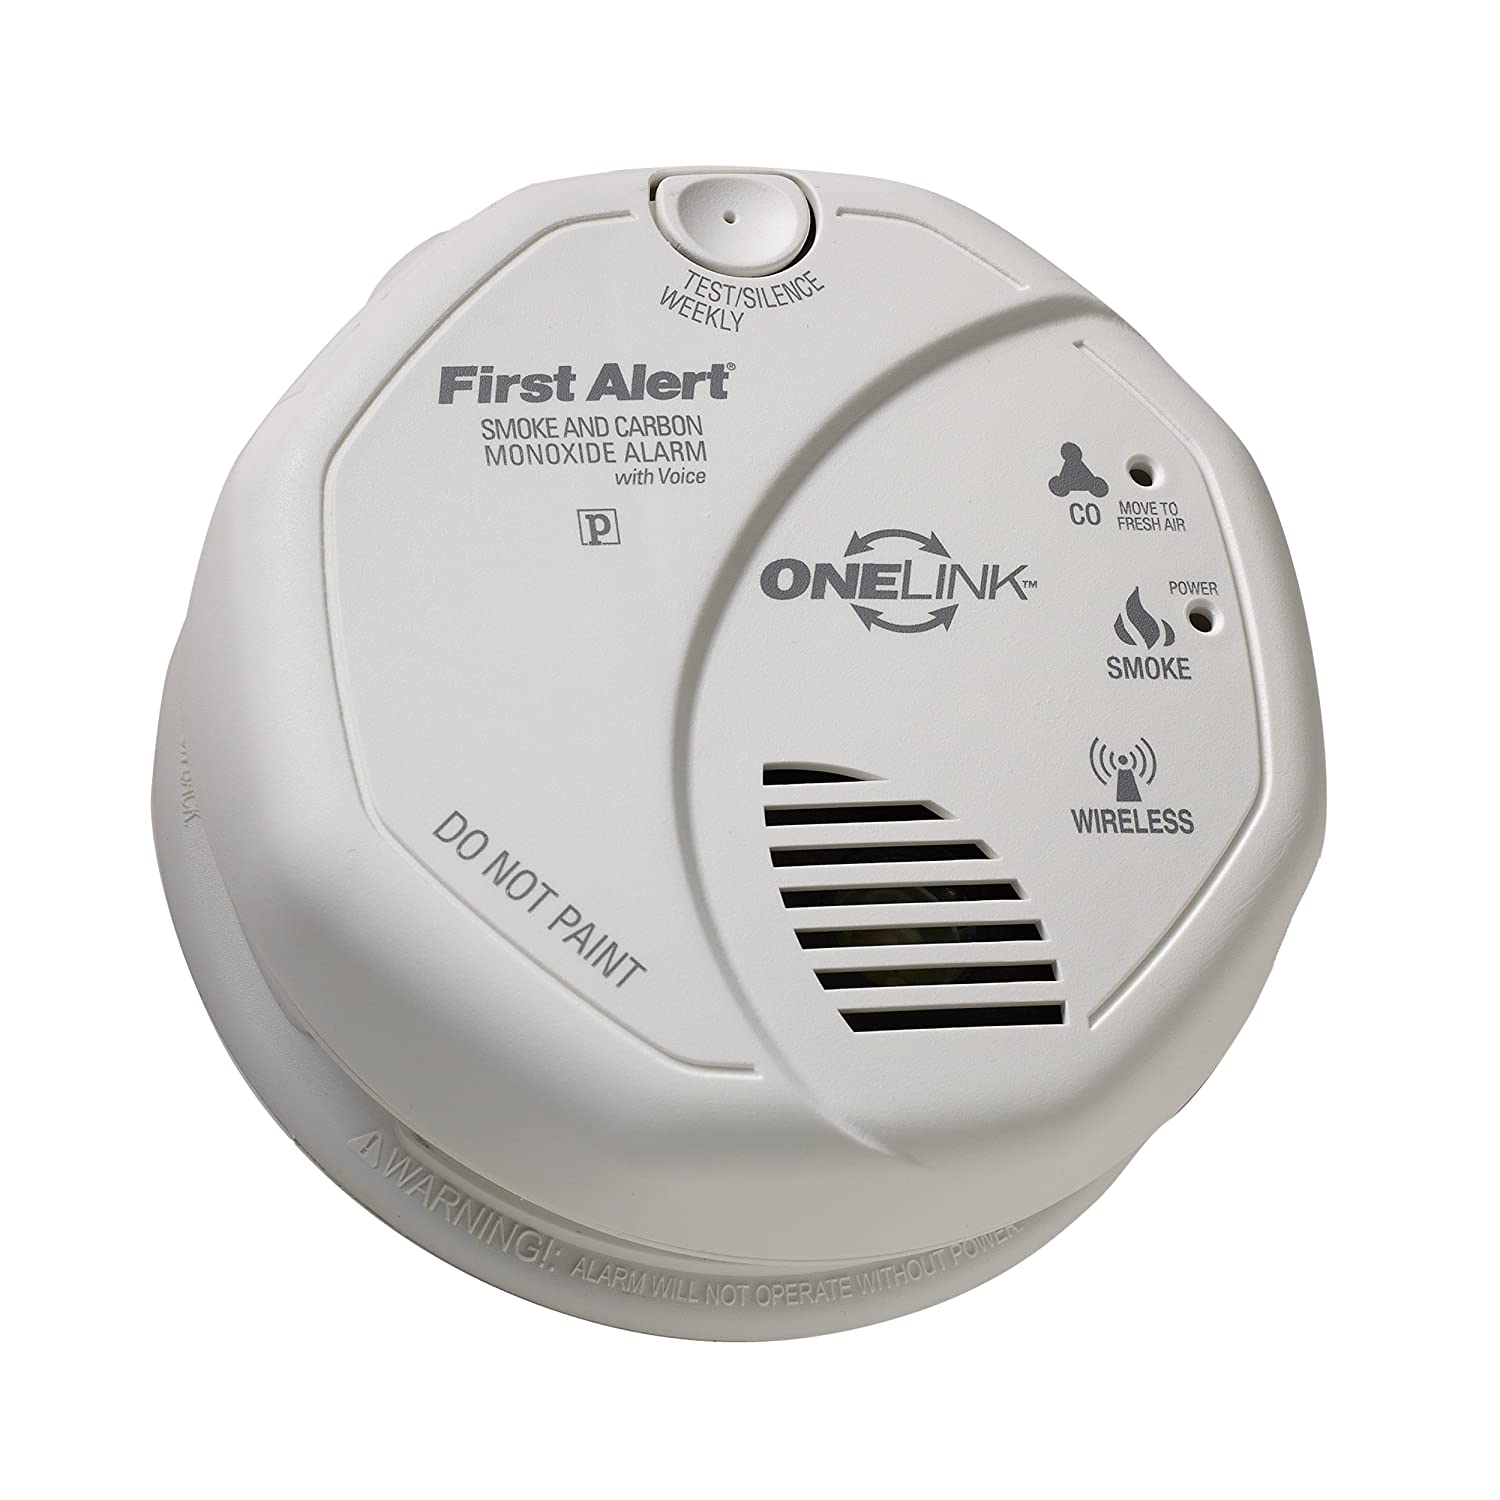 The Best Smoke Alarms Reviews Comparisons Of Top Rated First Alert Detector Wiring Diagram It Seamlessly Connects With Other Onelink Enabled For Ultimate Wireless Home